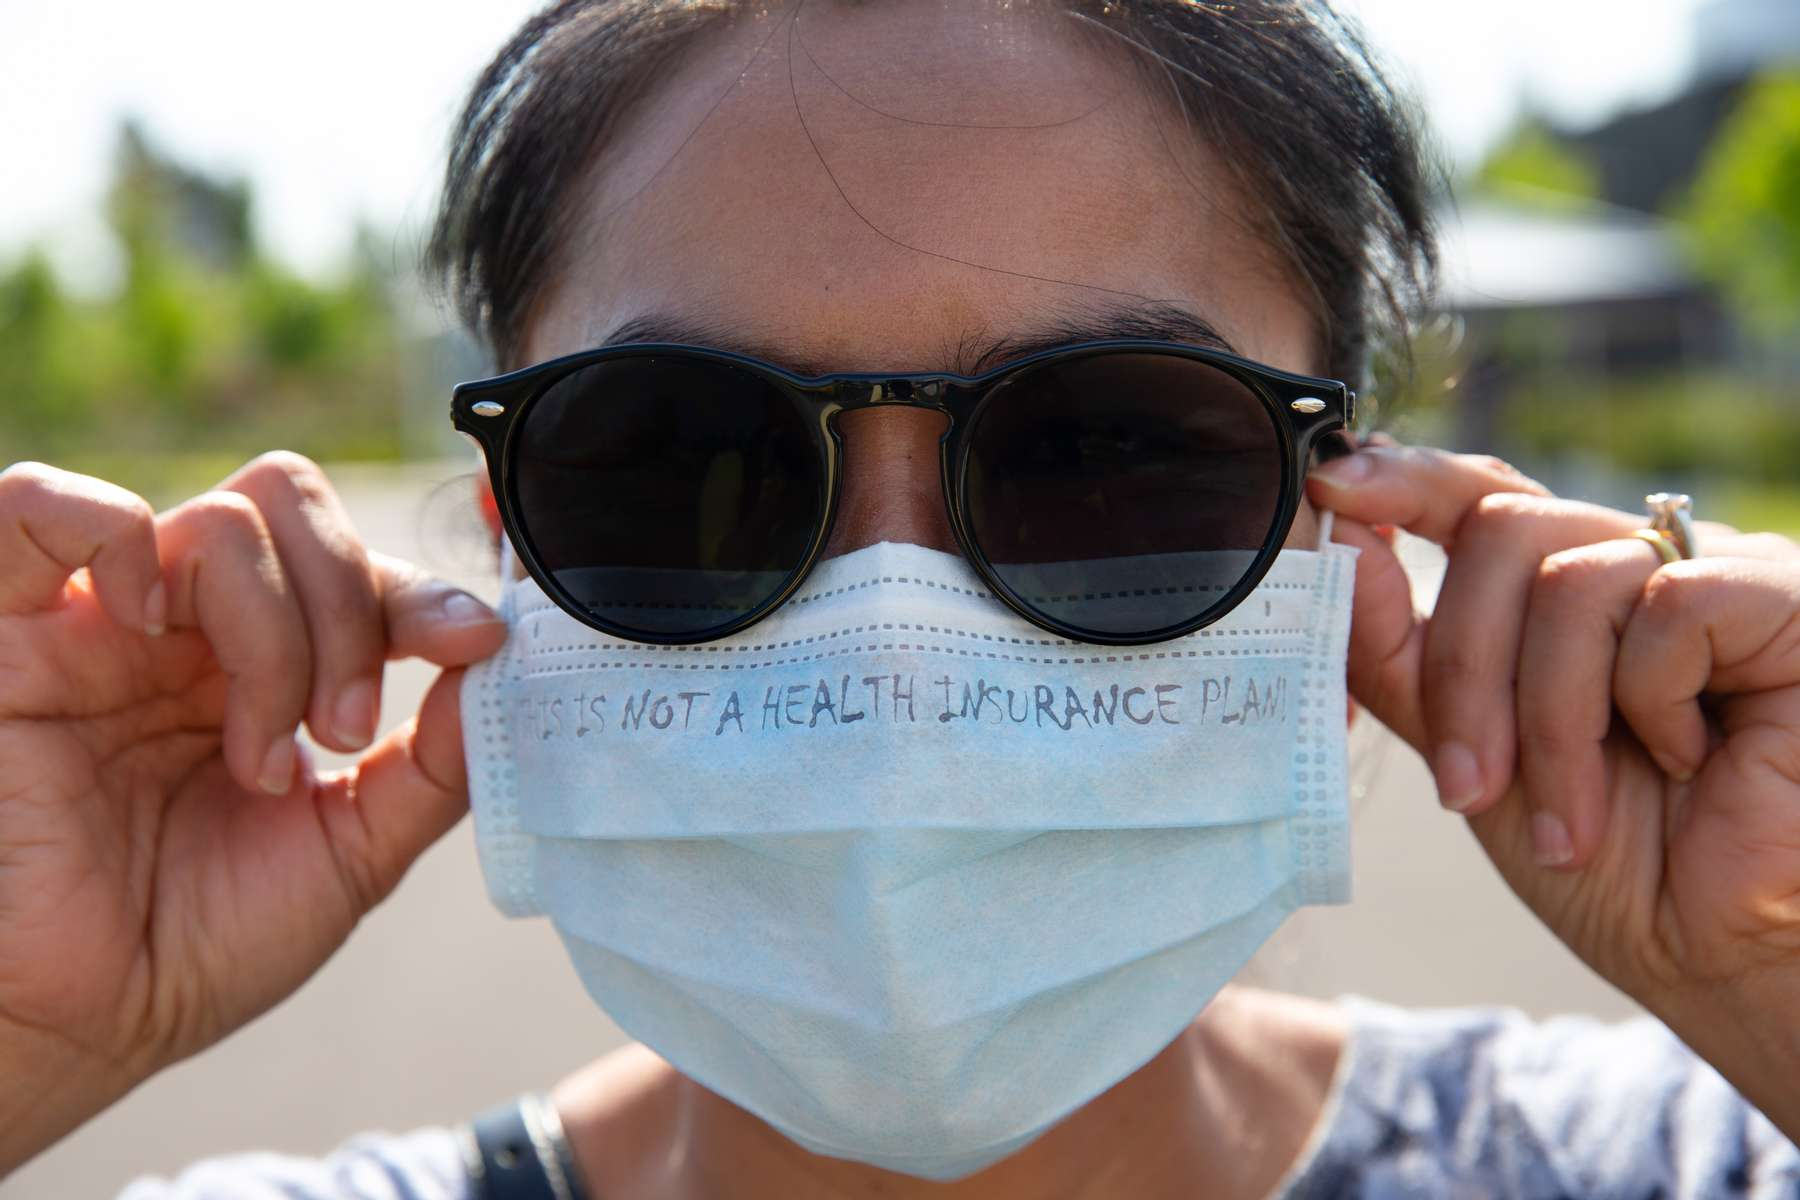 Rattana Chaokhote, Clinical Services supervisor at ICHS dons a mask that reads, {quote}This is not a health insurance plan,{quote} at a COVID-19 drive thru and walk-in testing site held for people in the Pacific Islander community in collaboration with International Community Health Services at Federal Way High School Federal Way, Washington on July 31, 2020. A recent report by the Washington State Department of Health (DOH) and Bellevue-based Institute for Disease Modeling (IDM) analyzing COVID-19 data highlight the pandemicís disproportionate and increasing impact on communities of color. Case rates over the pandemic for Hispanic people and Native Hawaiian or Other Pacific Islander people are nine times higher than those of White people. Hospitalization rates are seven times higher for Hispanics and ten times higher for Native Hawaiians or other Pacific Islanders than those of White people. ìWe know the COVID-19 pandemic has intensified the health inequities historically marginalized and oppressed communities already experience,î said Dr. Kathy Lofy, state health officer at DOH. ìThese data are deeply concerning and underline the critical need to address the COVID-19 impacts weíre currently seeing by prioritizing outreach, testing, education and related materials for disproportionately impacted communities in ways that are culturally and linguistically appropriate and accessible.